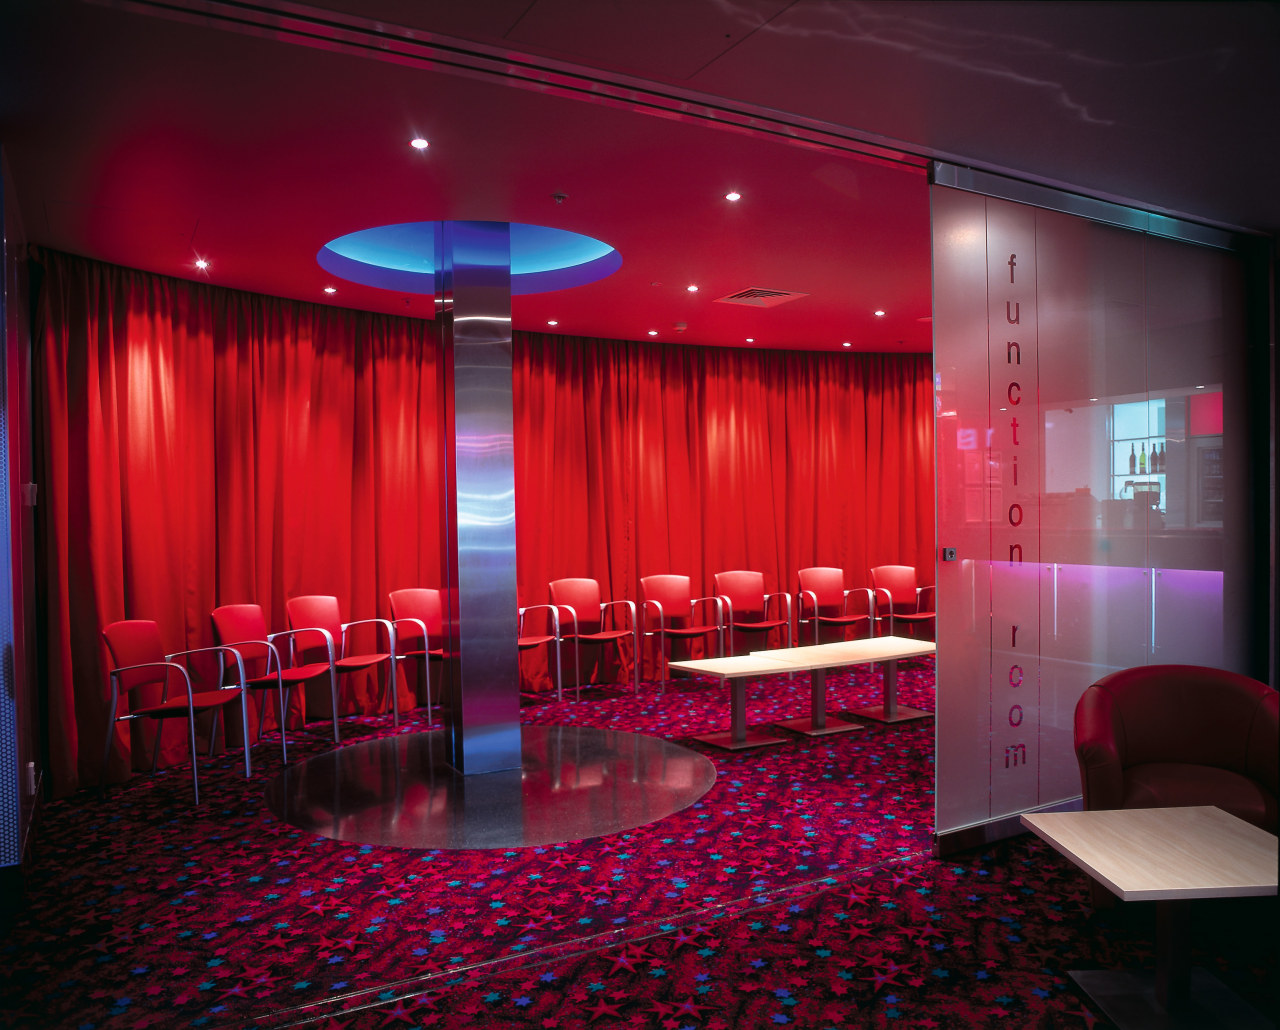 Westfield St Lukes Village Skycity cinema. Function room auditorium, ceiling, entertainment, function hall, interior design, light, lighting, red, stage, table, red